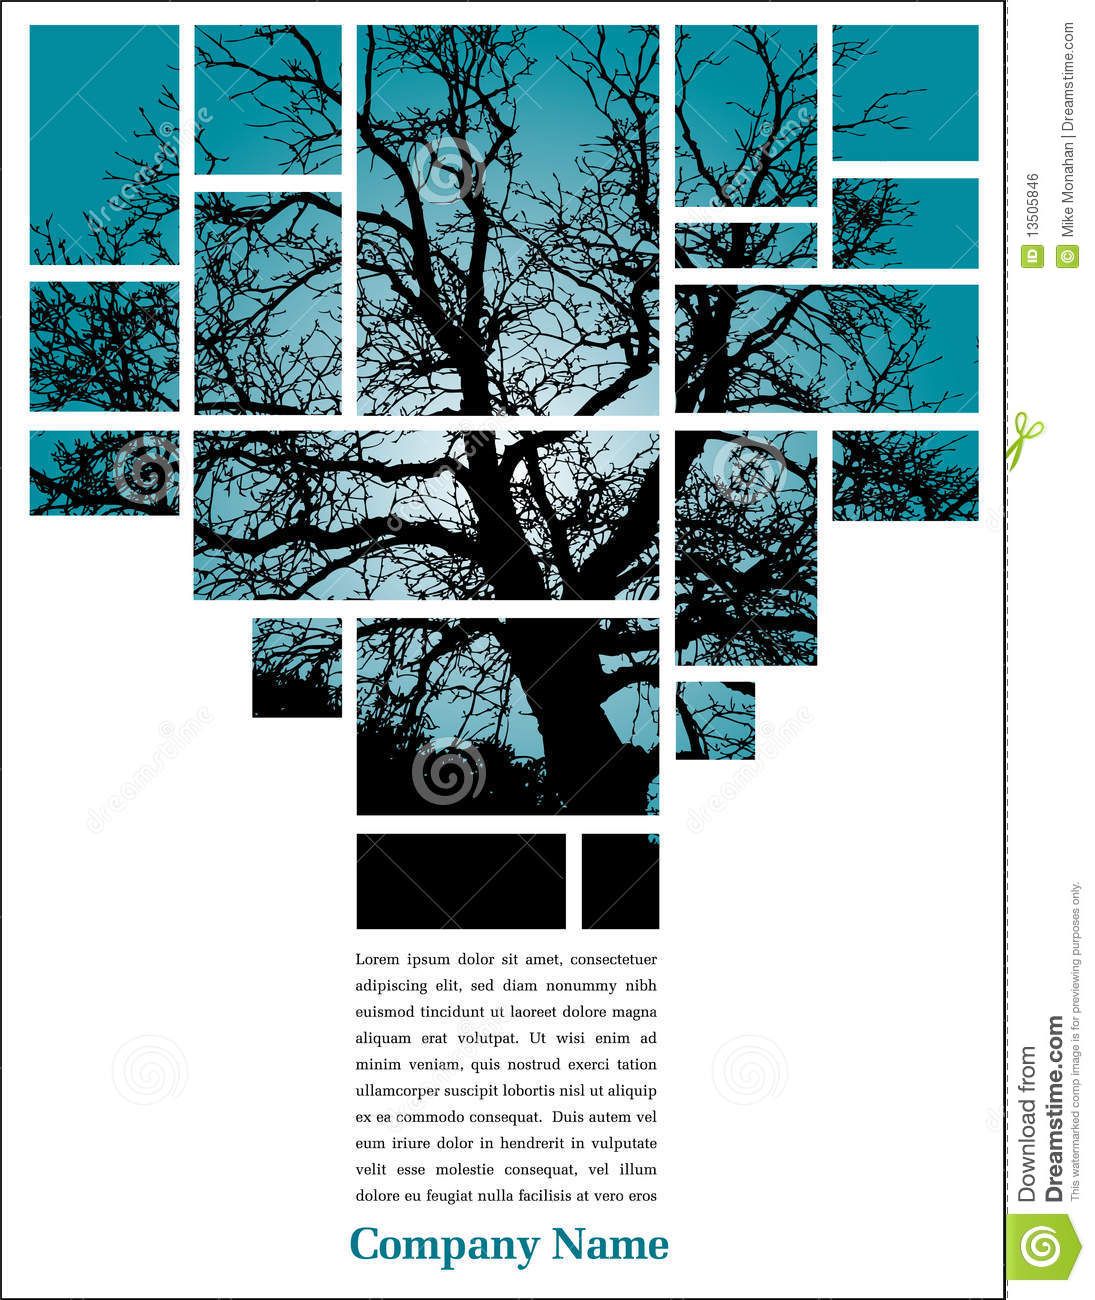 Tree in blocks with text